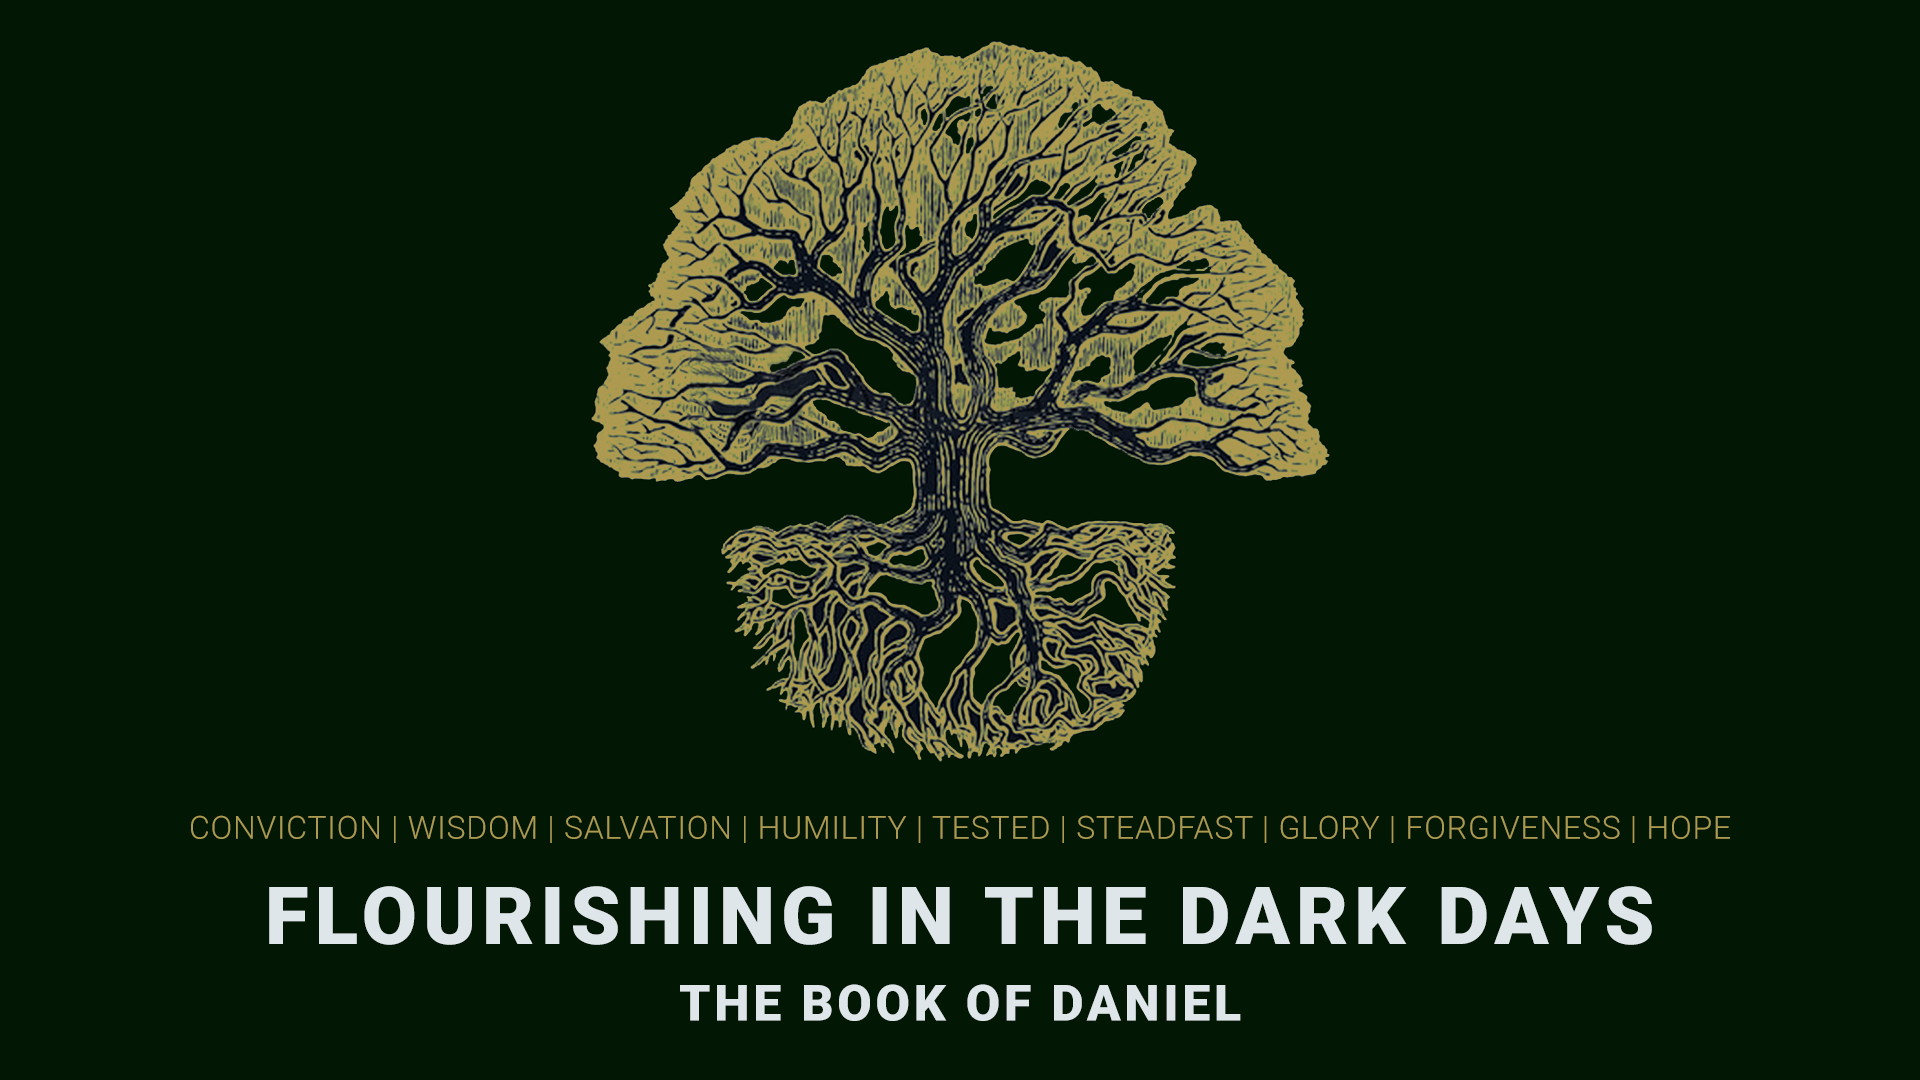 Introduction to the book of Daniel